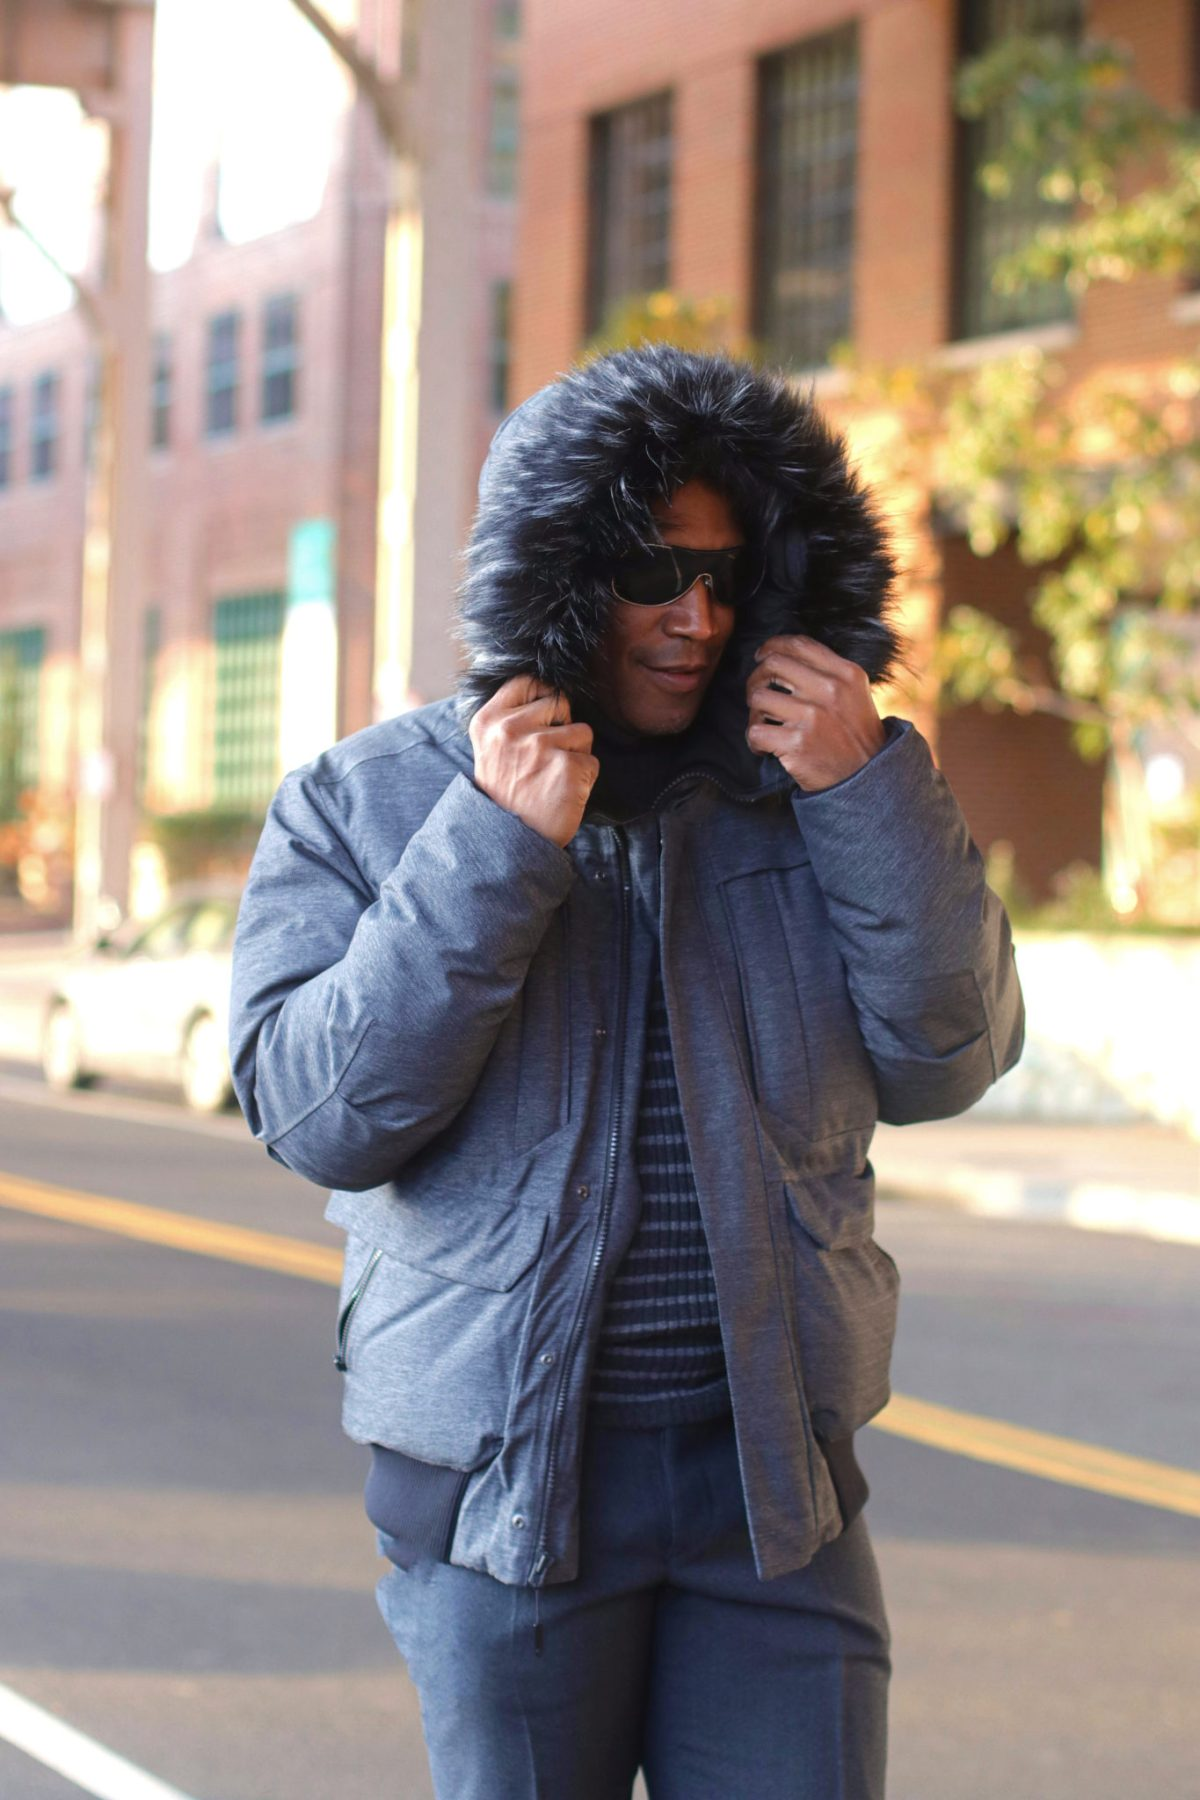 Cryos in the City - Hooded